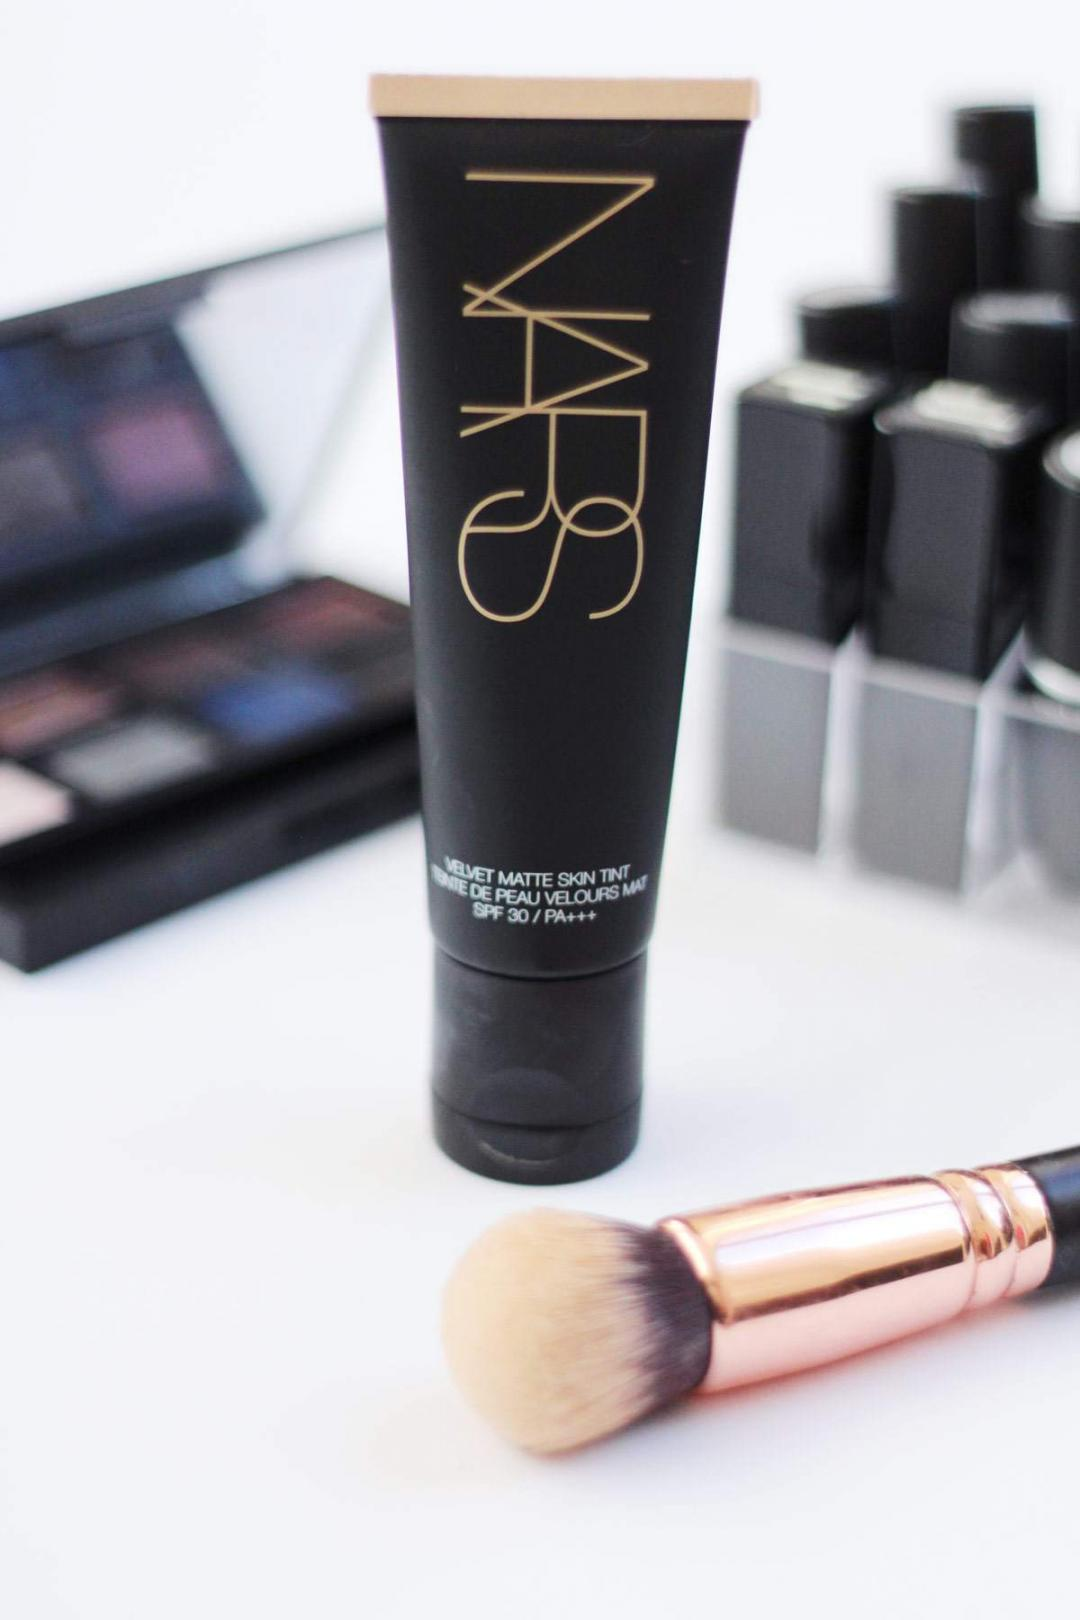 nars-velvet-matte-skin-tint-spf30-review-beauty-blog-finland